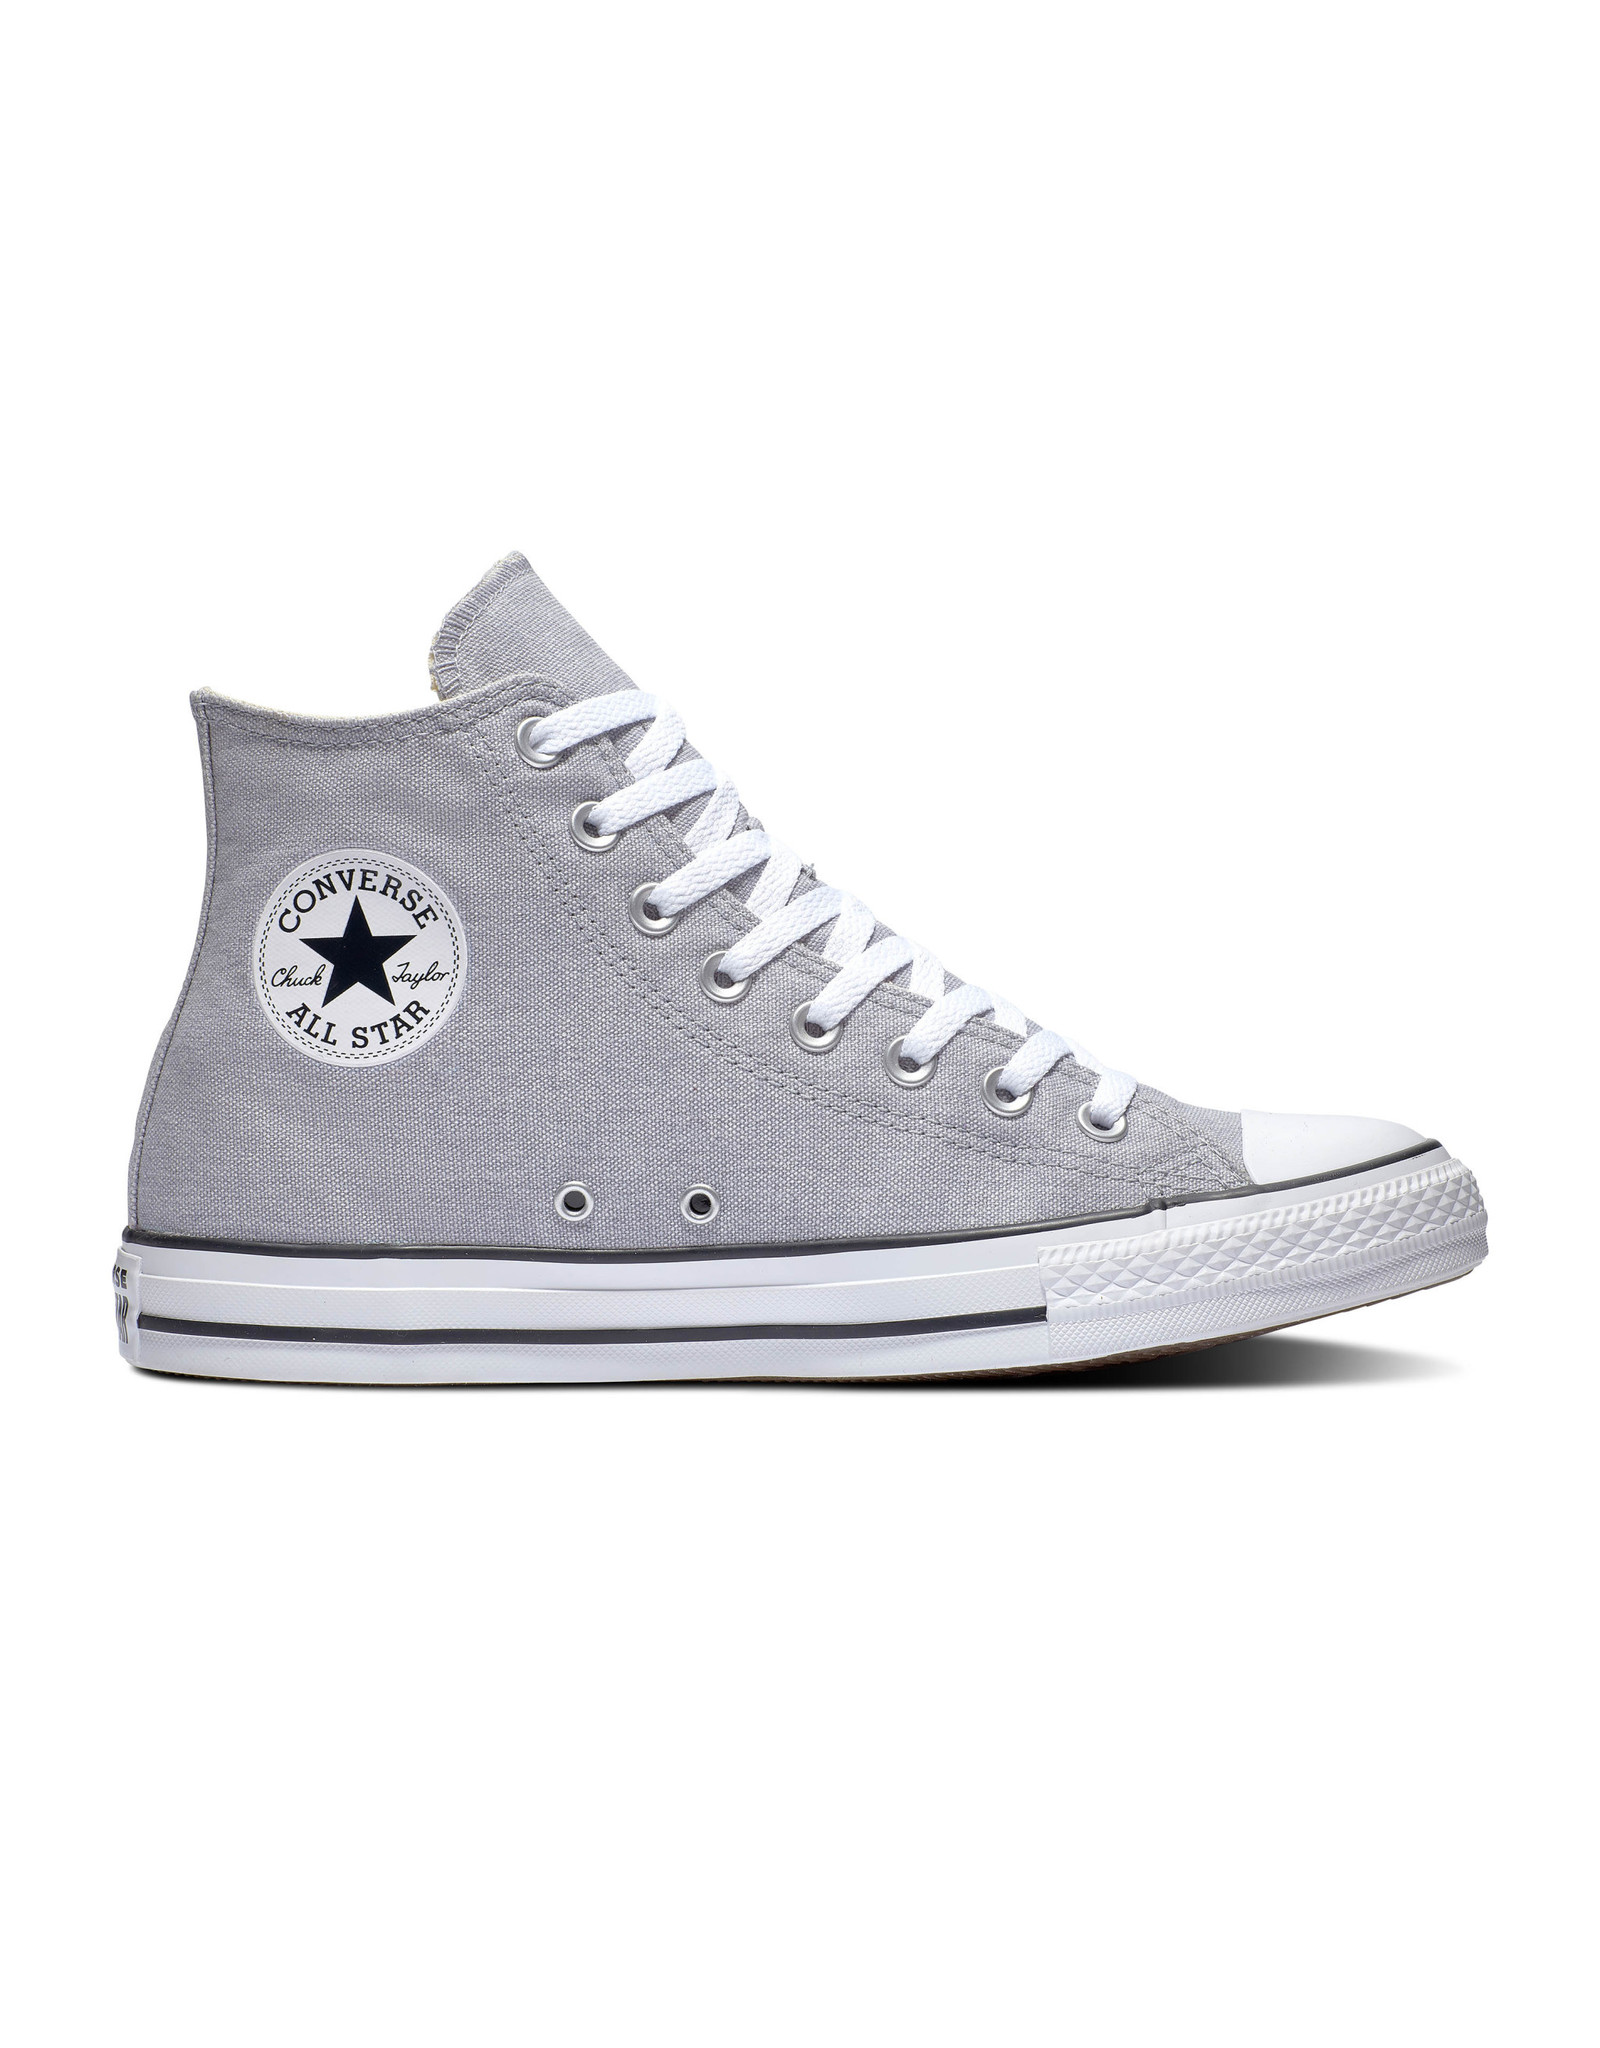 CONVERSE CHUCK TAYLOR ALL STAR HI WOLF GREY/NATURAL IVORY/WHITE C19WG-164449C